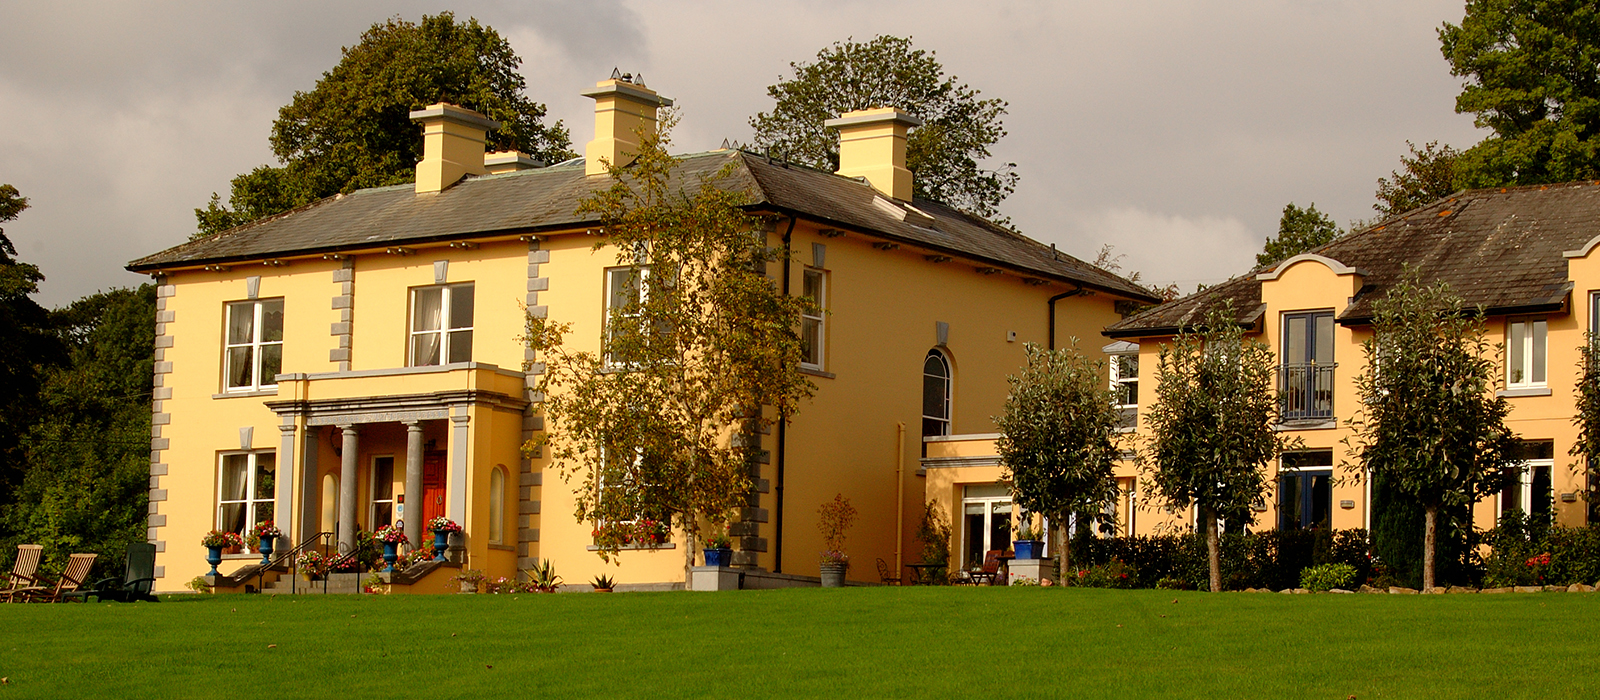 The Mustard Seed - Luxury Country House Hotel and Restaurant in Limerick